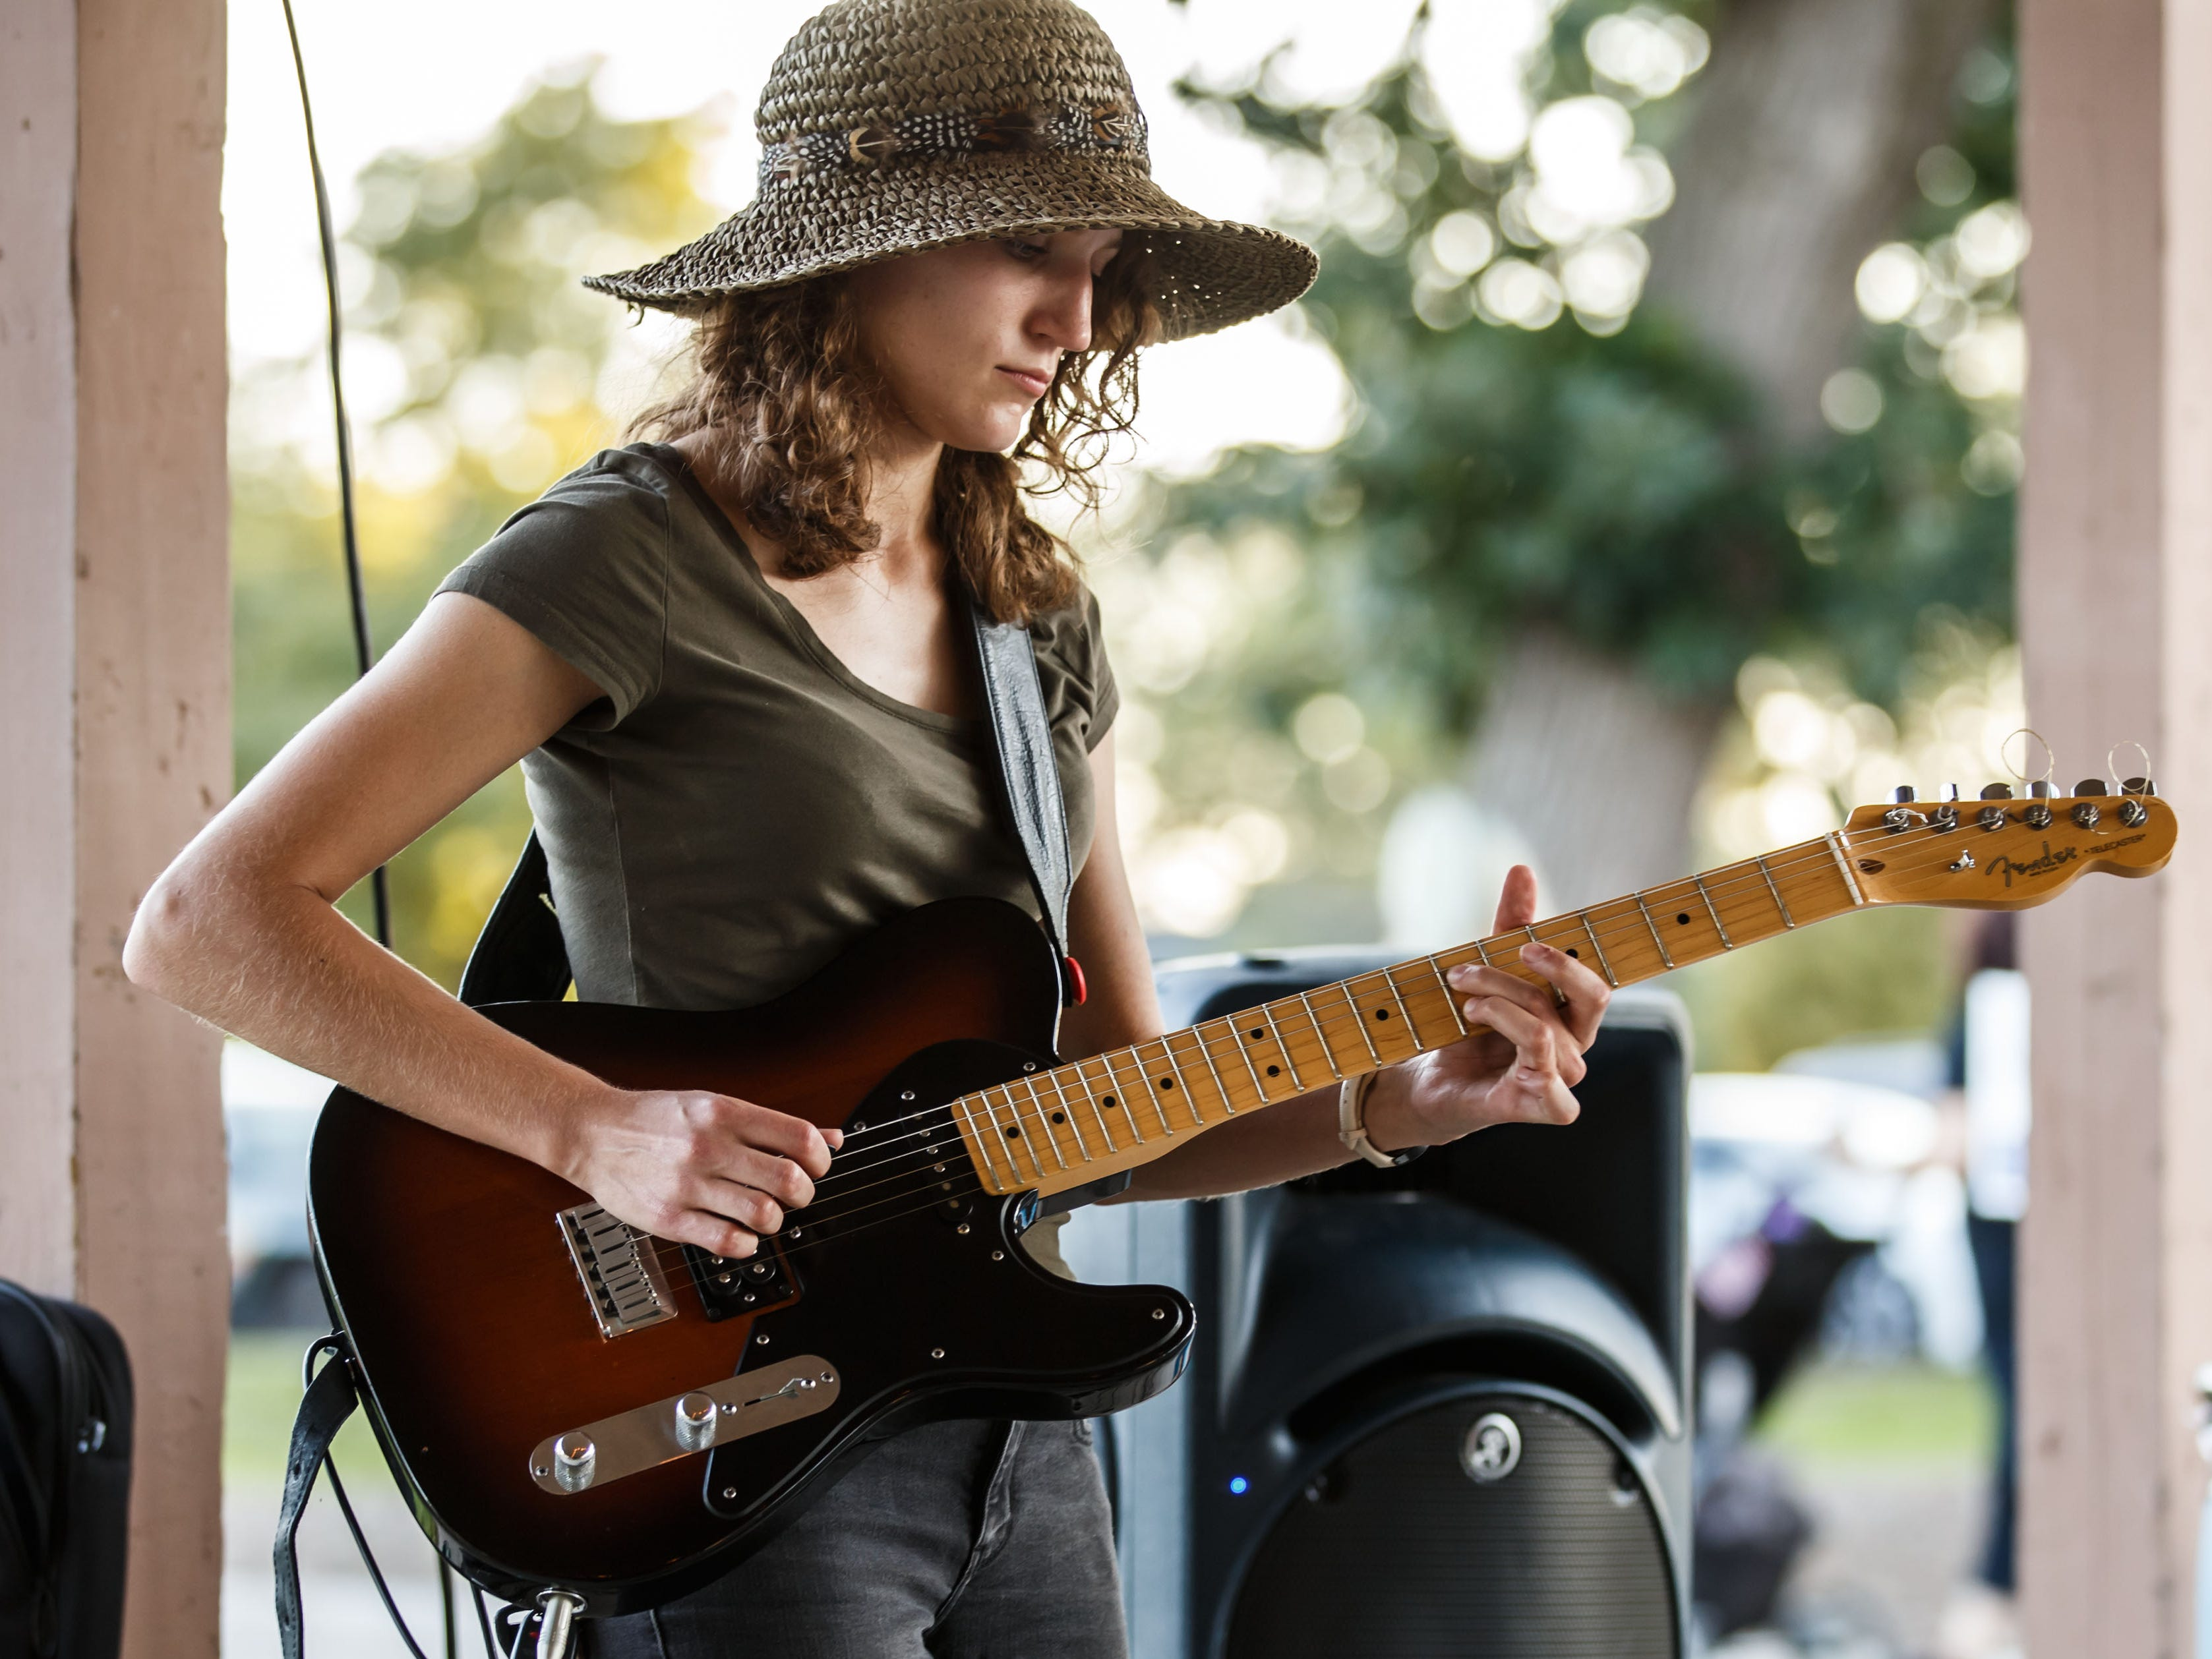 Musicians Jenna Rades and Michael Sodnik (not pictured) perform during Pewaukee Parktoberfest at Kiwanis Village Park on Saturday, Sept. 15, 2018. The event, hosted in conjunction with Pewaukee Park & Rec., features the Winnebeergo mobile beer garden, live music, food trucks, a rotating selection of 12 different craft beers, games and more.